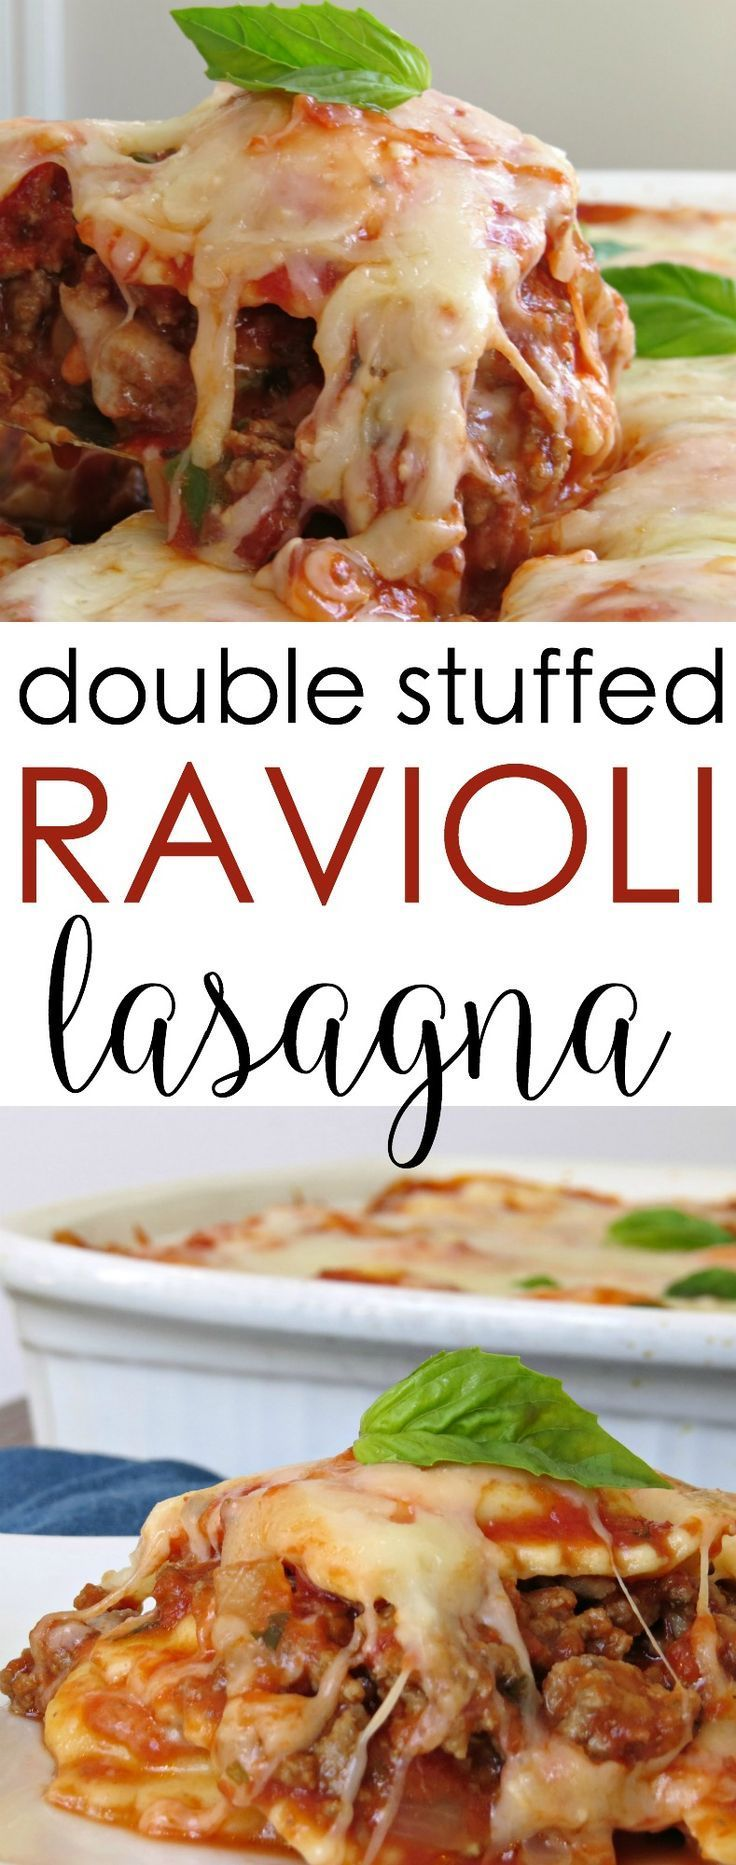 Easy casseroles: This is the most delicious stuffed ravioli lasagna. Its layered with frozen ravioli, a hearty amount of ground beef and peppers, and covered in cheese.